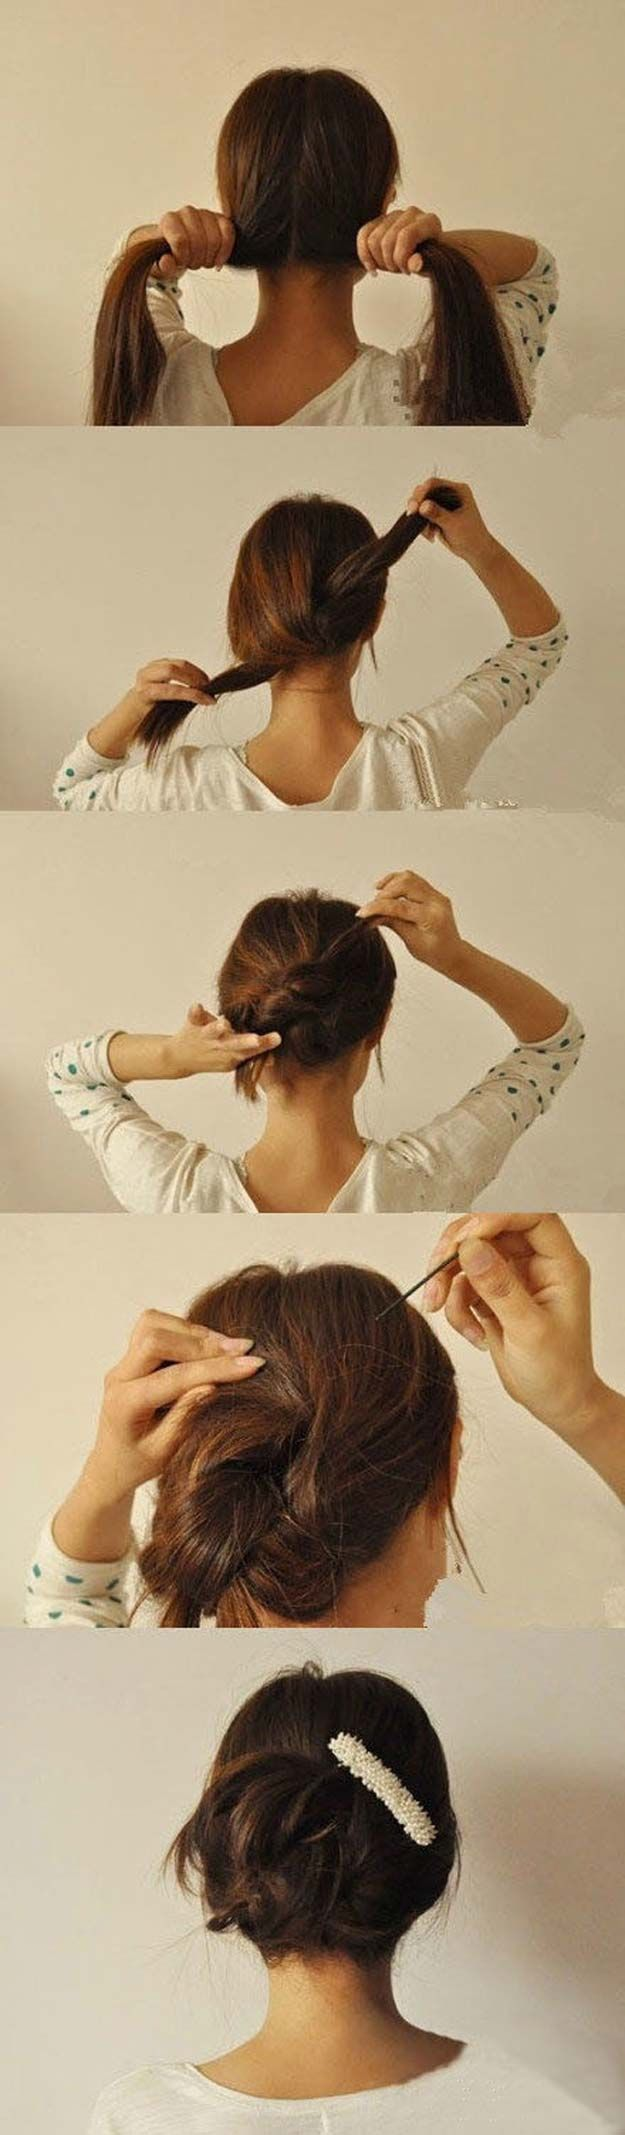 Best Hairstyles for Long Hair - Updo Hairstyle - Step by Step Tutorials for Easy...